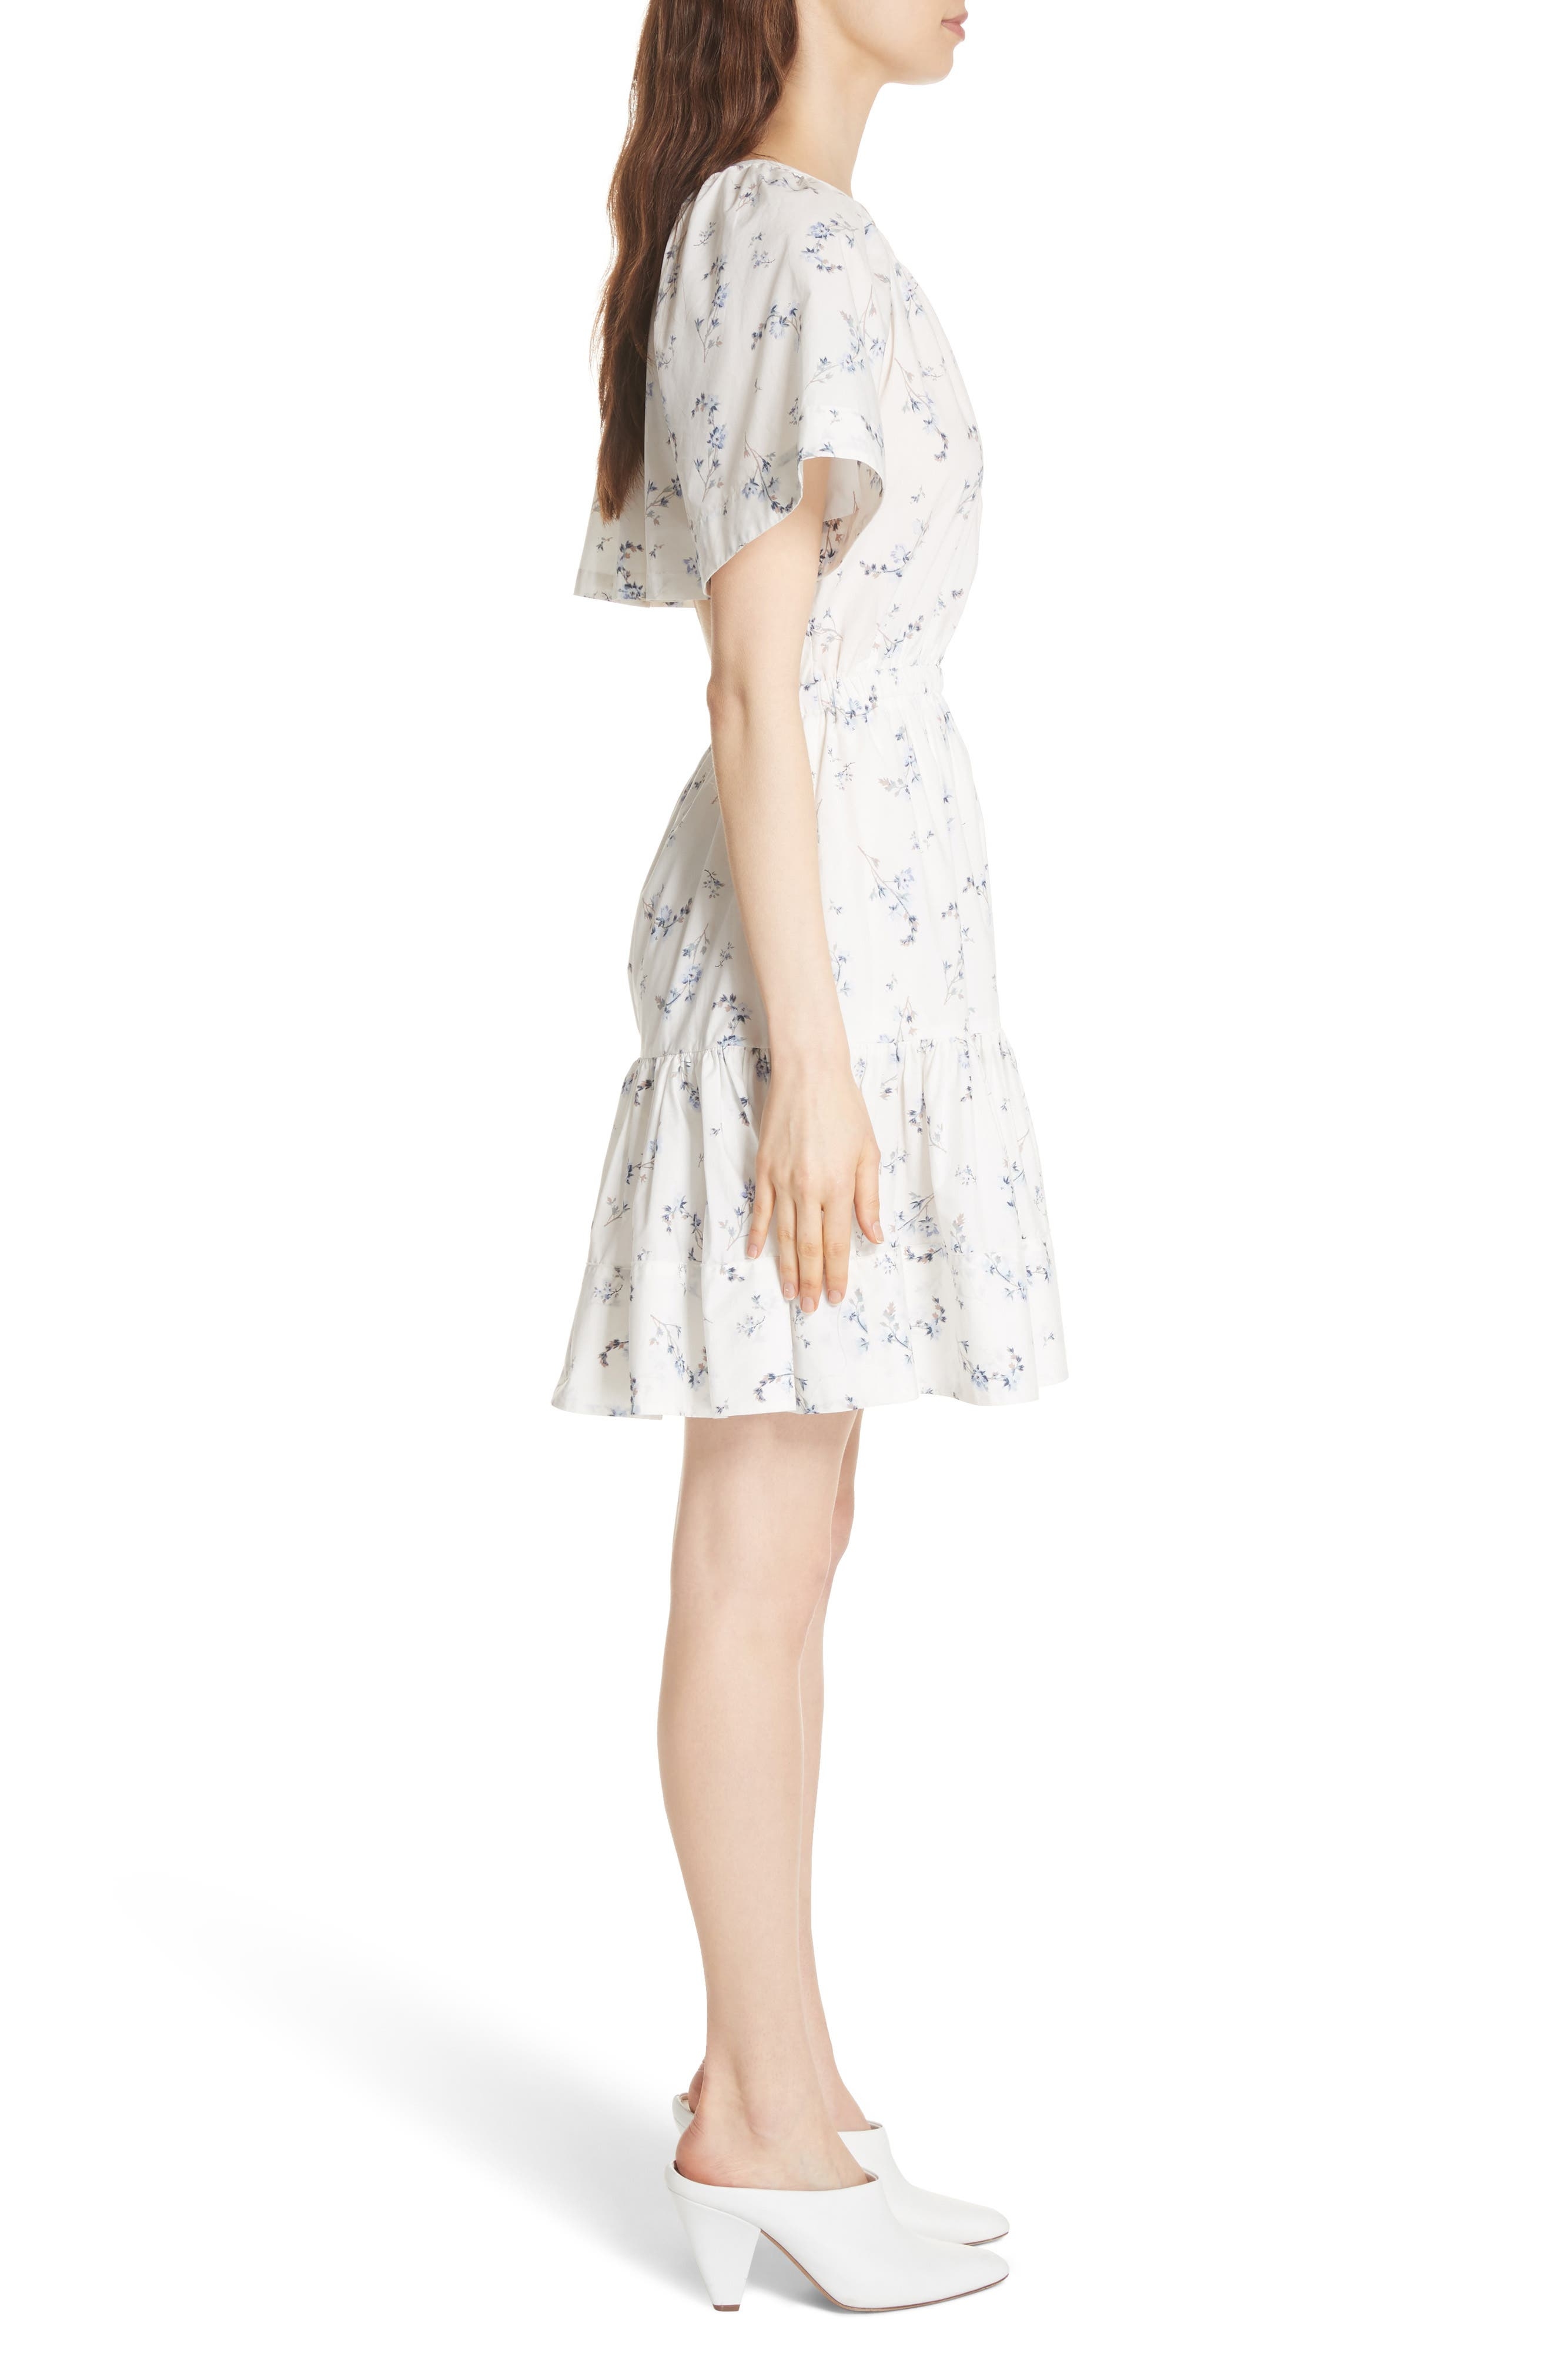 Francine Back Cutout Mini Dress,                             Alternate thumbnail 3, color,                             Snow Combo